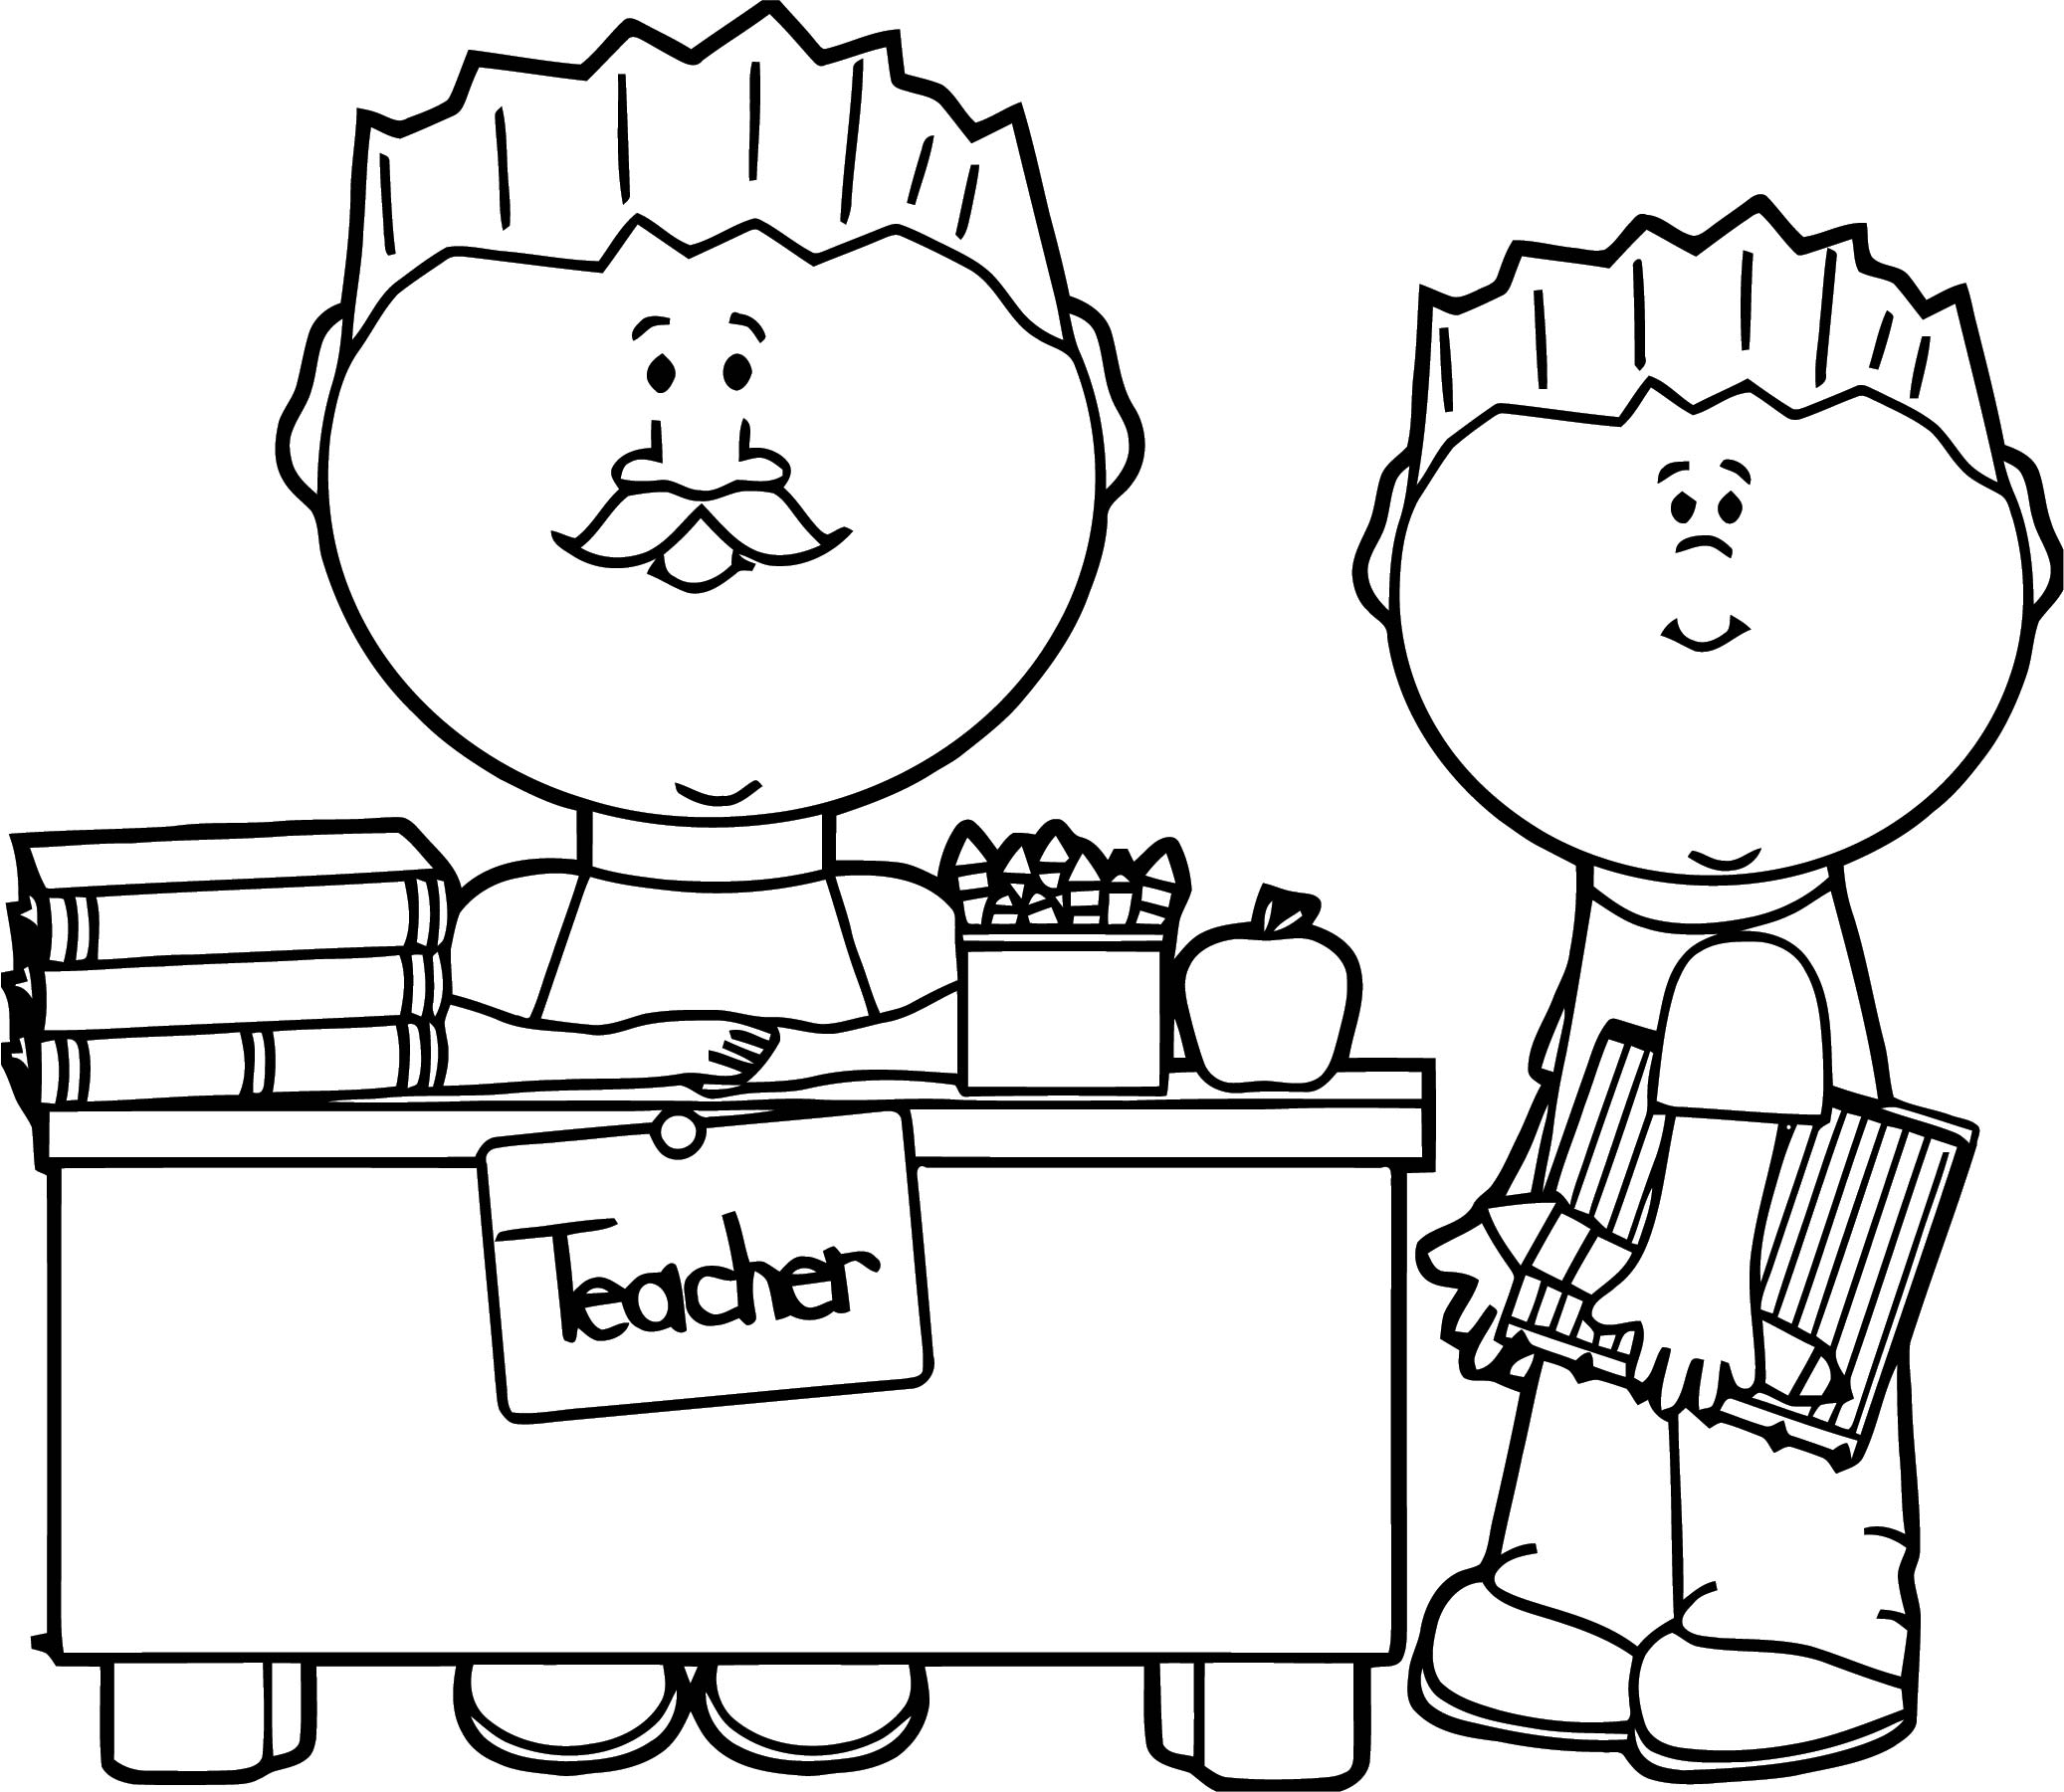 English Teacher We Coloring Page 093